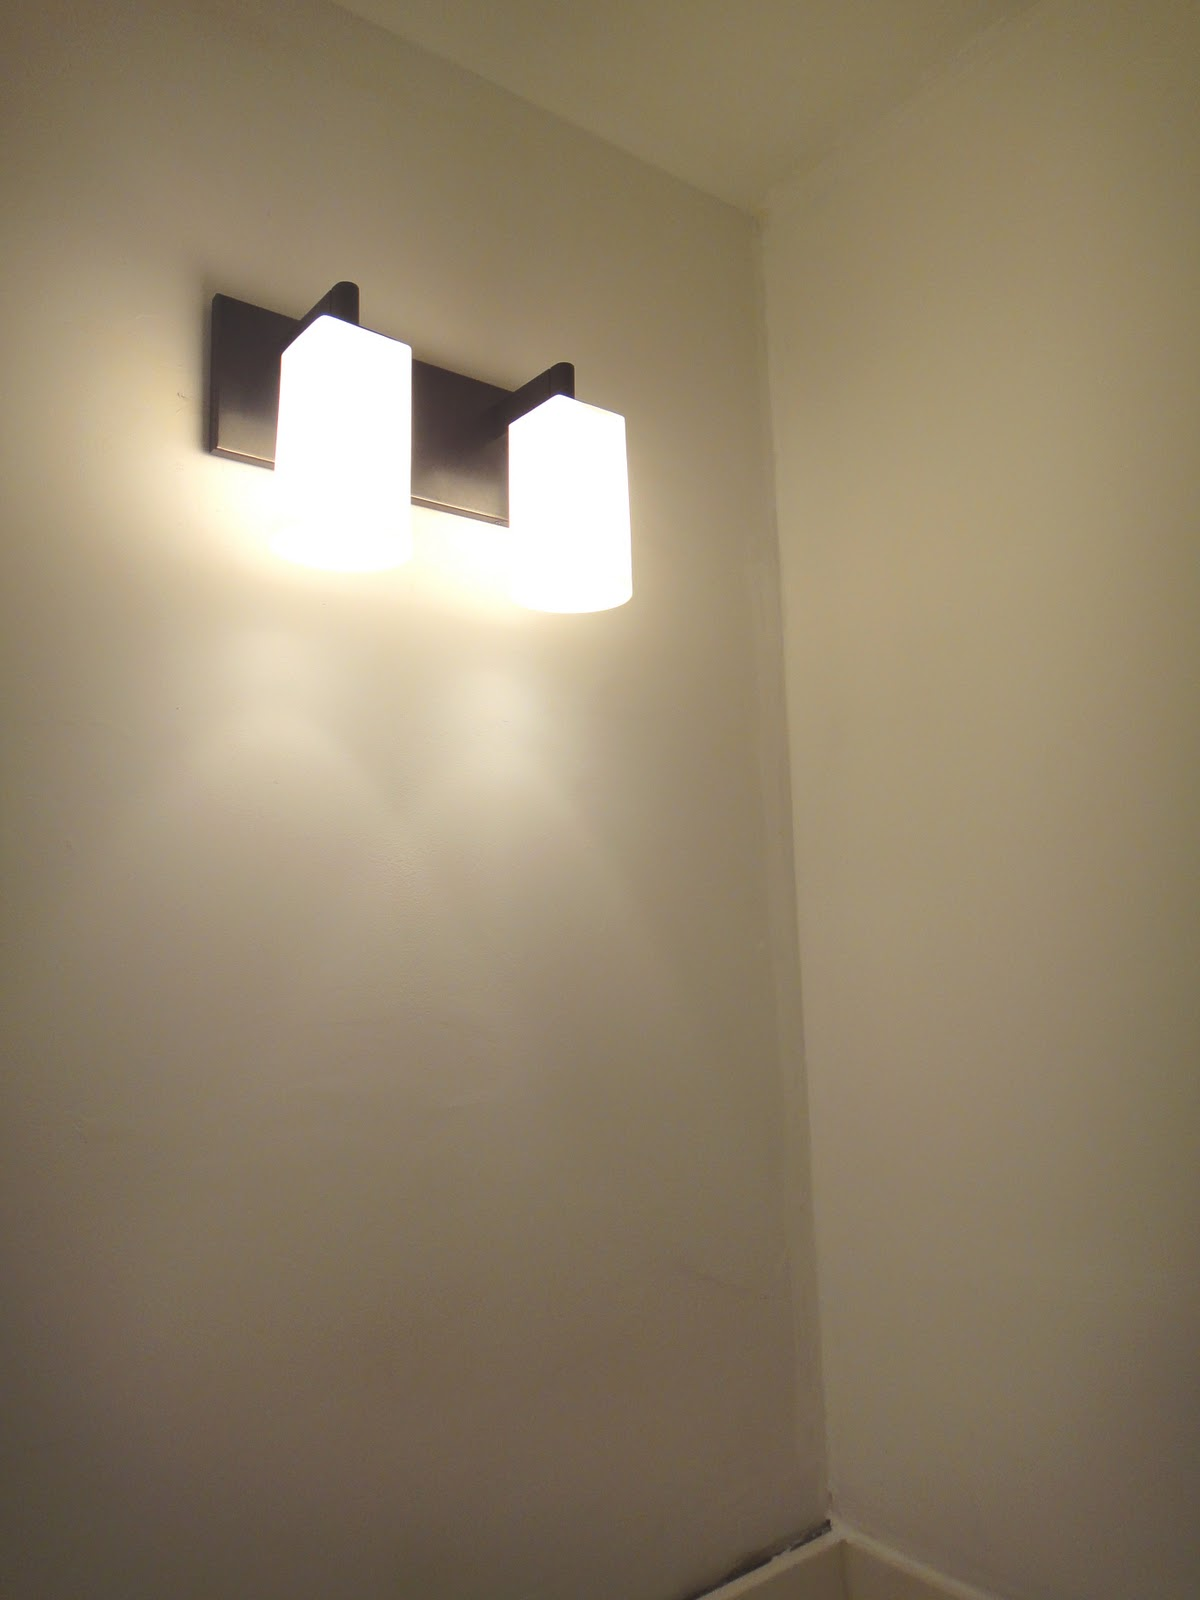 Bathroom Vanity Lights With Outlet : Bathroom Lighting With Electrical Outlet Simple Home Decoration